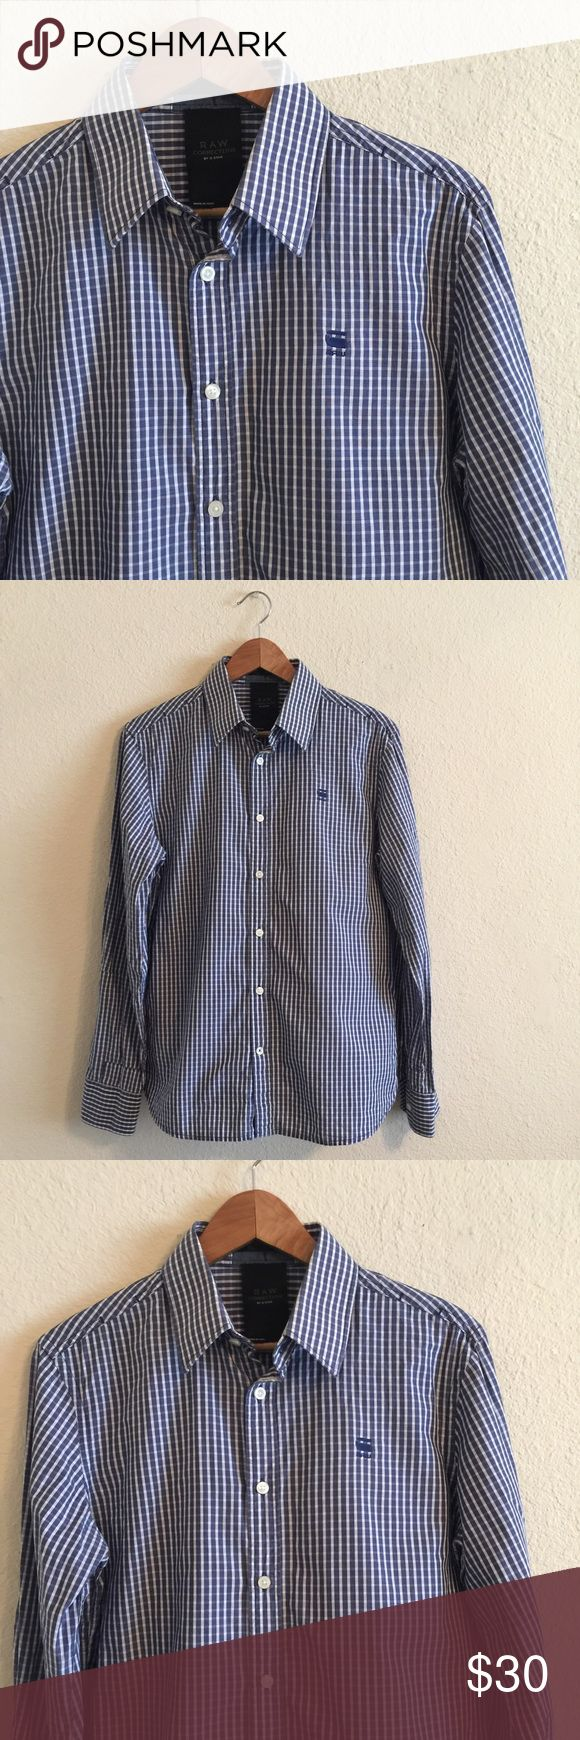 G-STAR Raw men's striped Dress shirt M G star Raw 3301 men's CorrectLine Dress shirt .  Size: Medium.  In excellent condition! If you have any questions feel free to ask! G-Star Shirts Dress Shirts